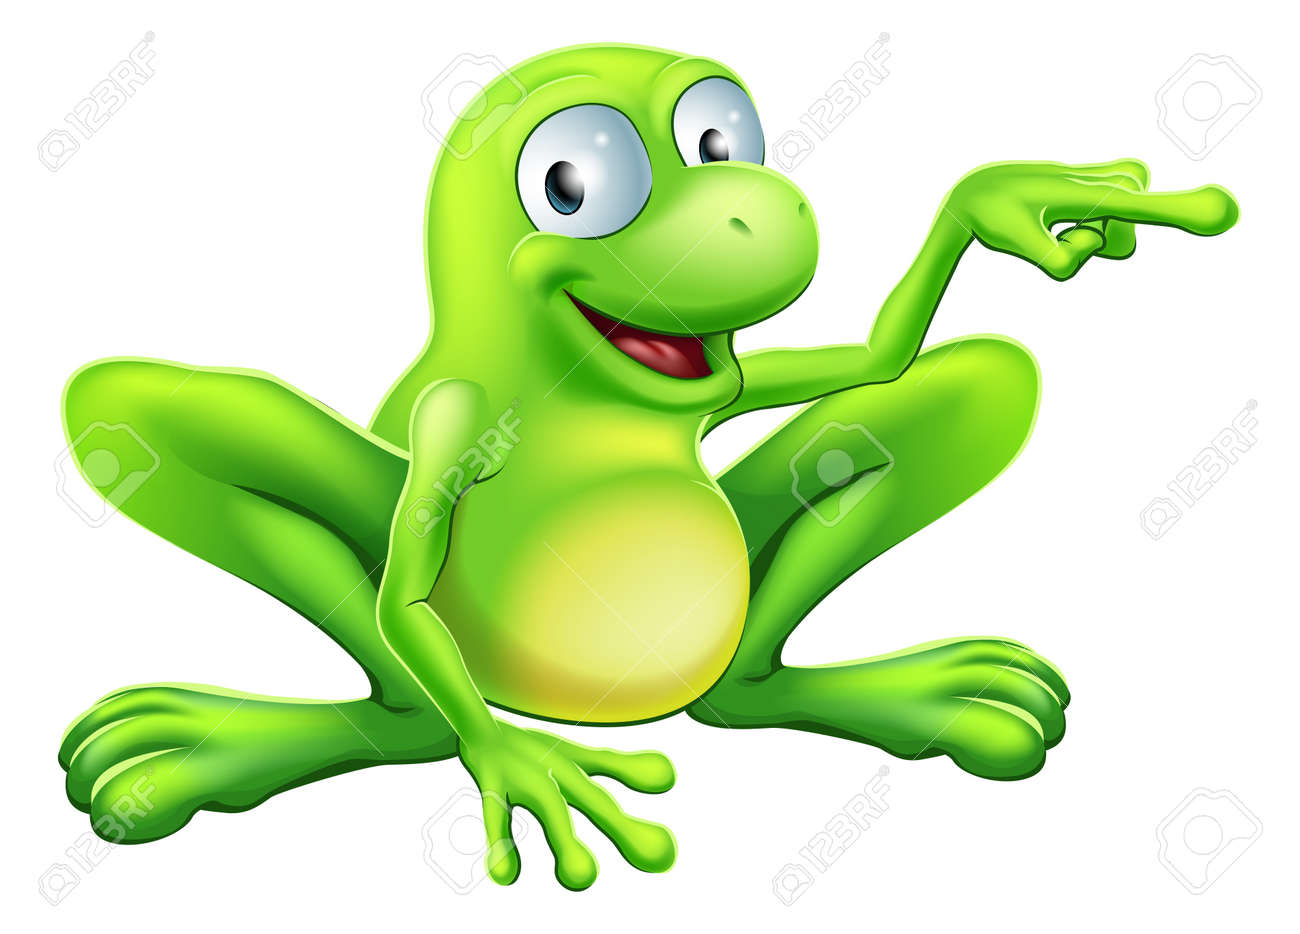 An illustration of a cute green happy frog character pointing or showing something Stock Vector - 18292501